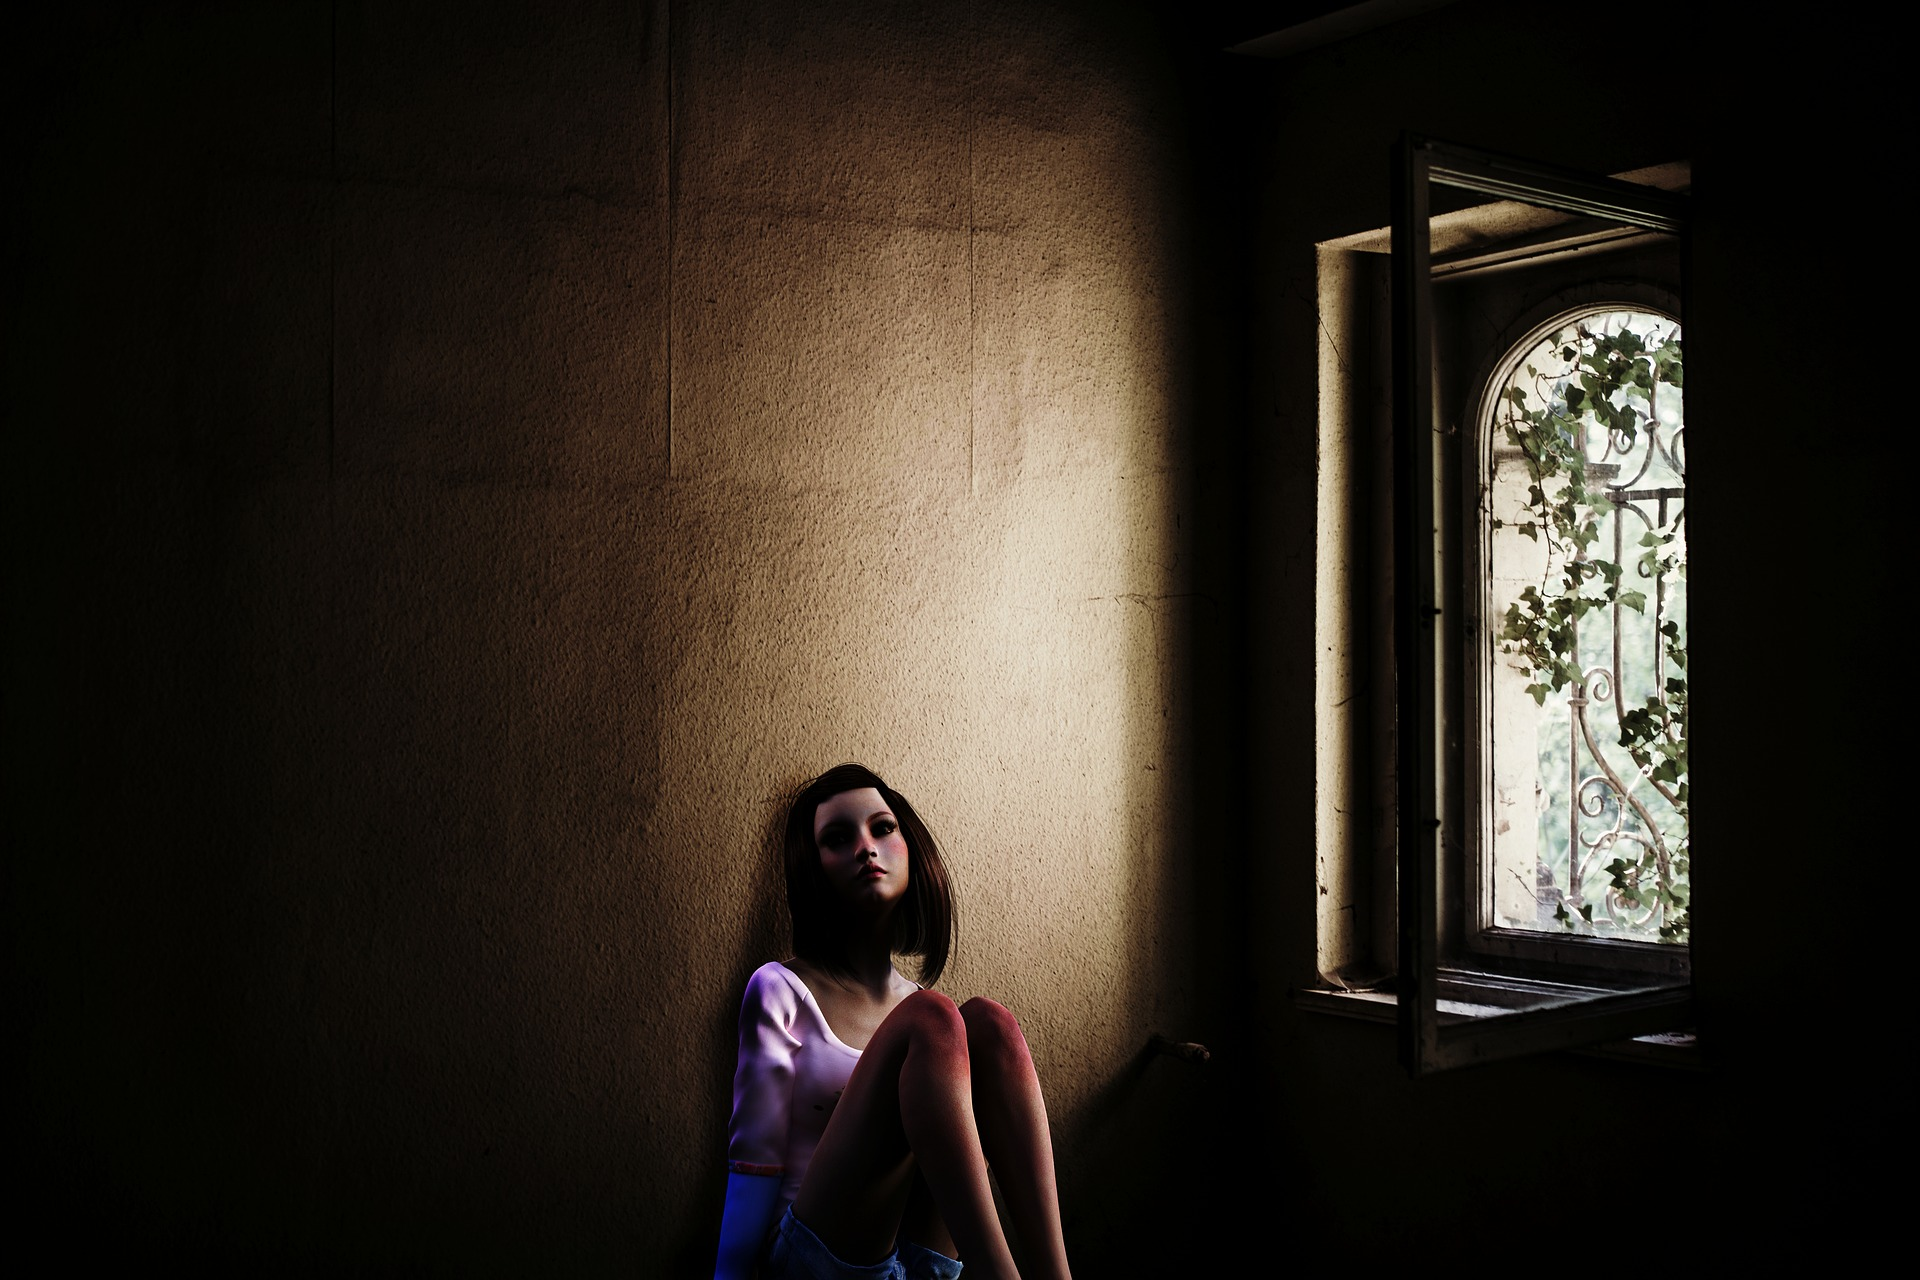 young woman in dark room looking anxious - anxiety